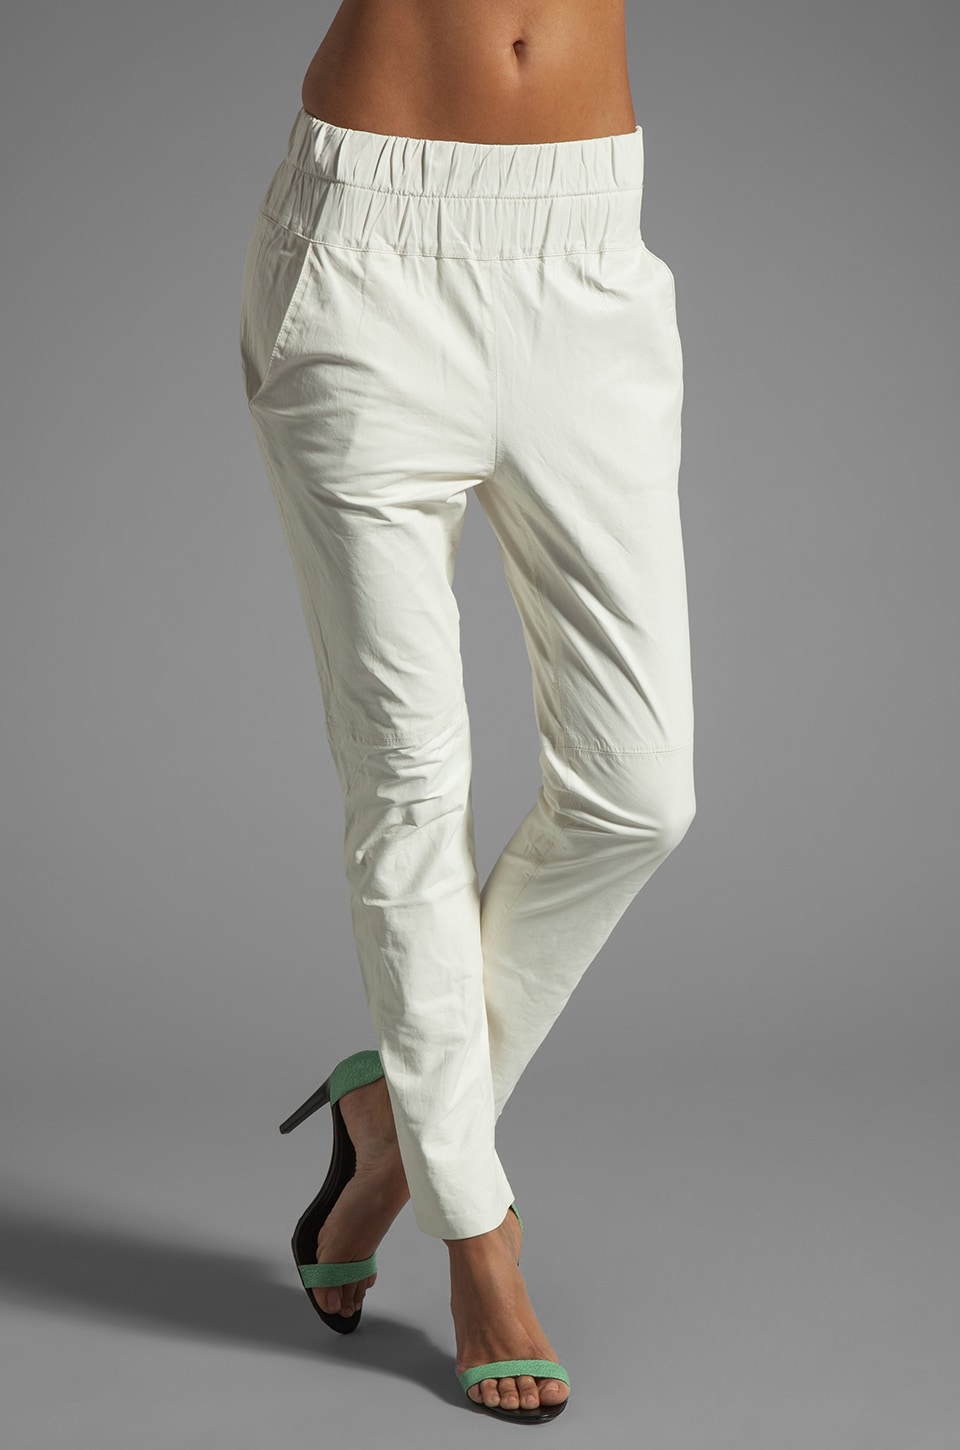 Friend of Mine Tyson Leather Pant in White